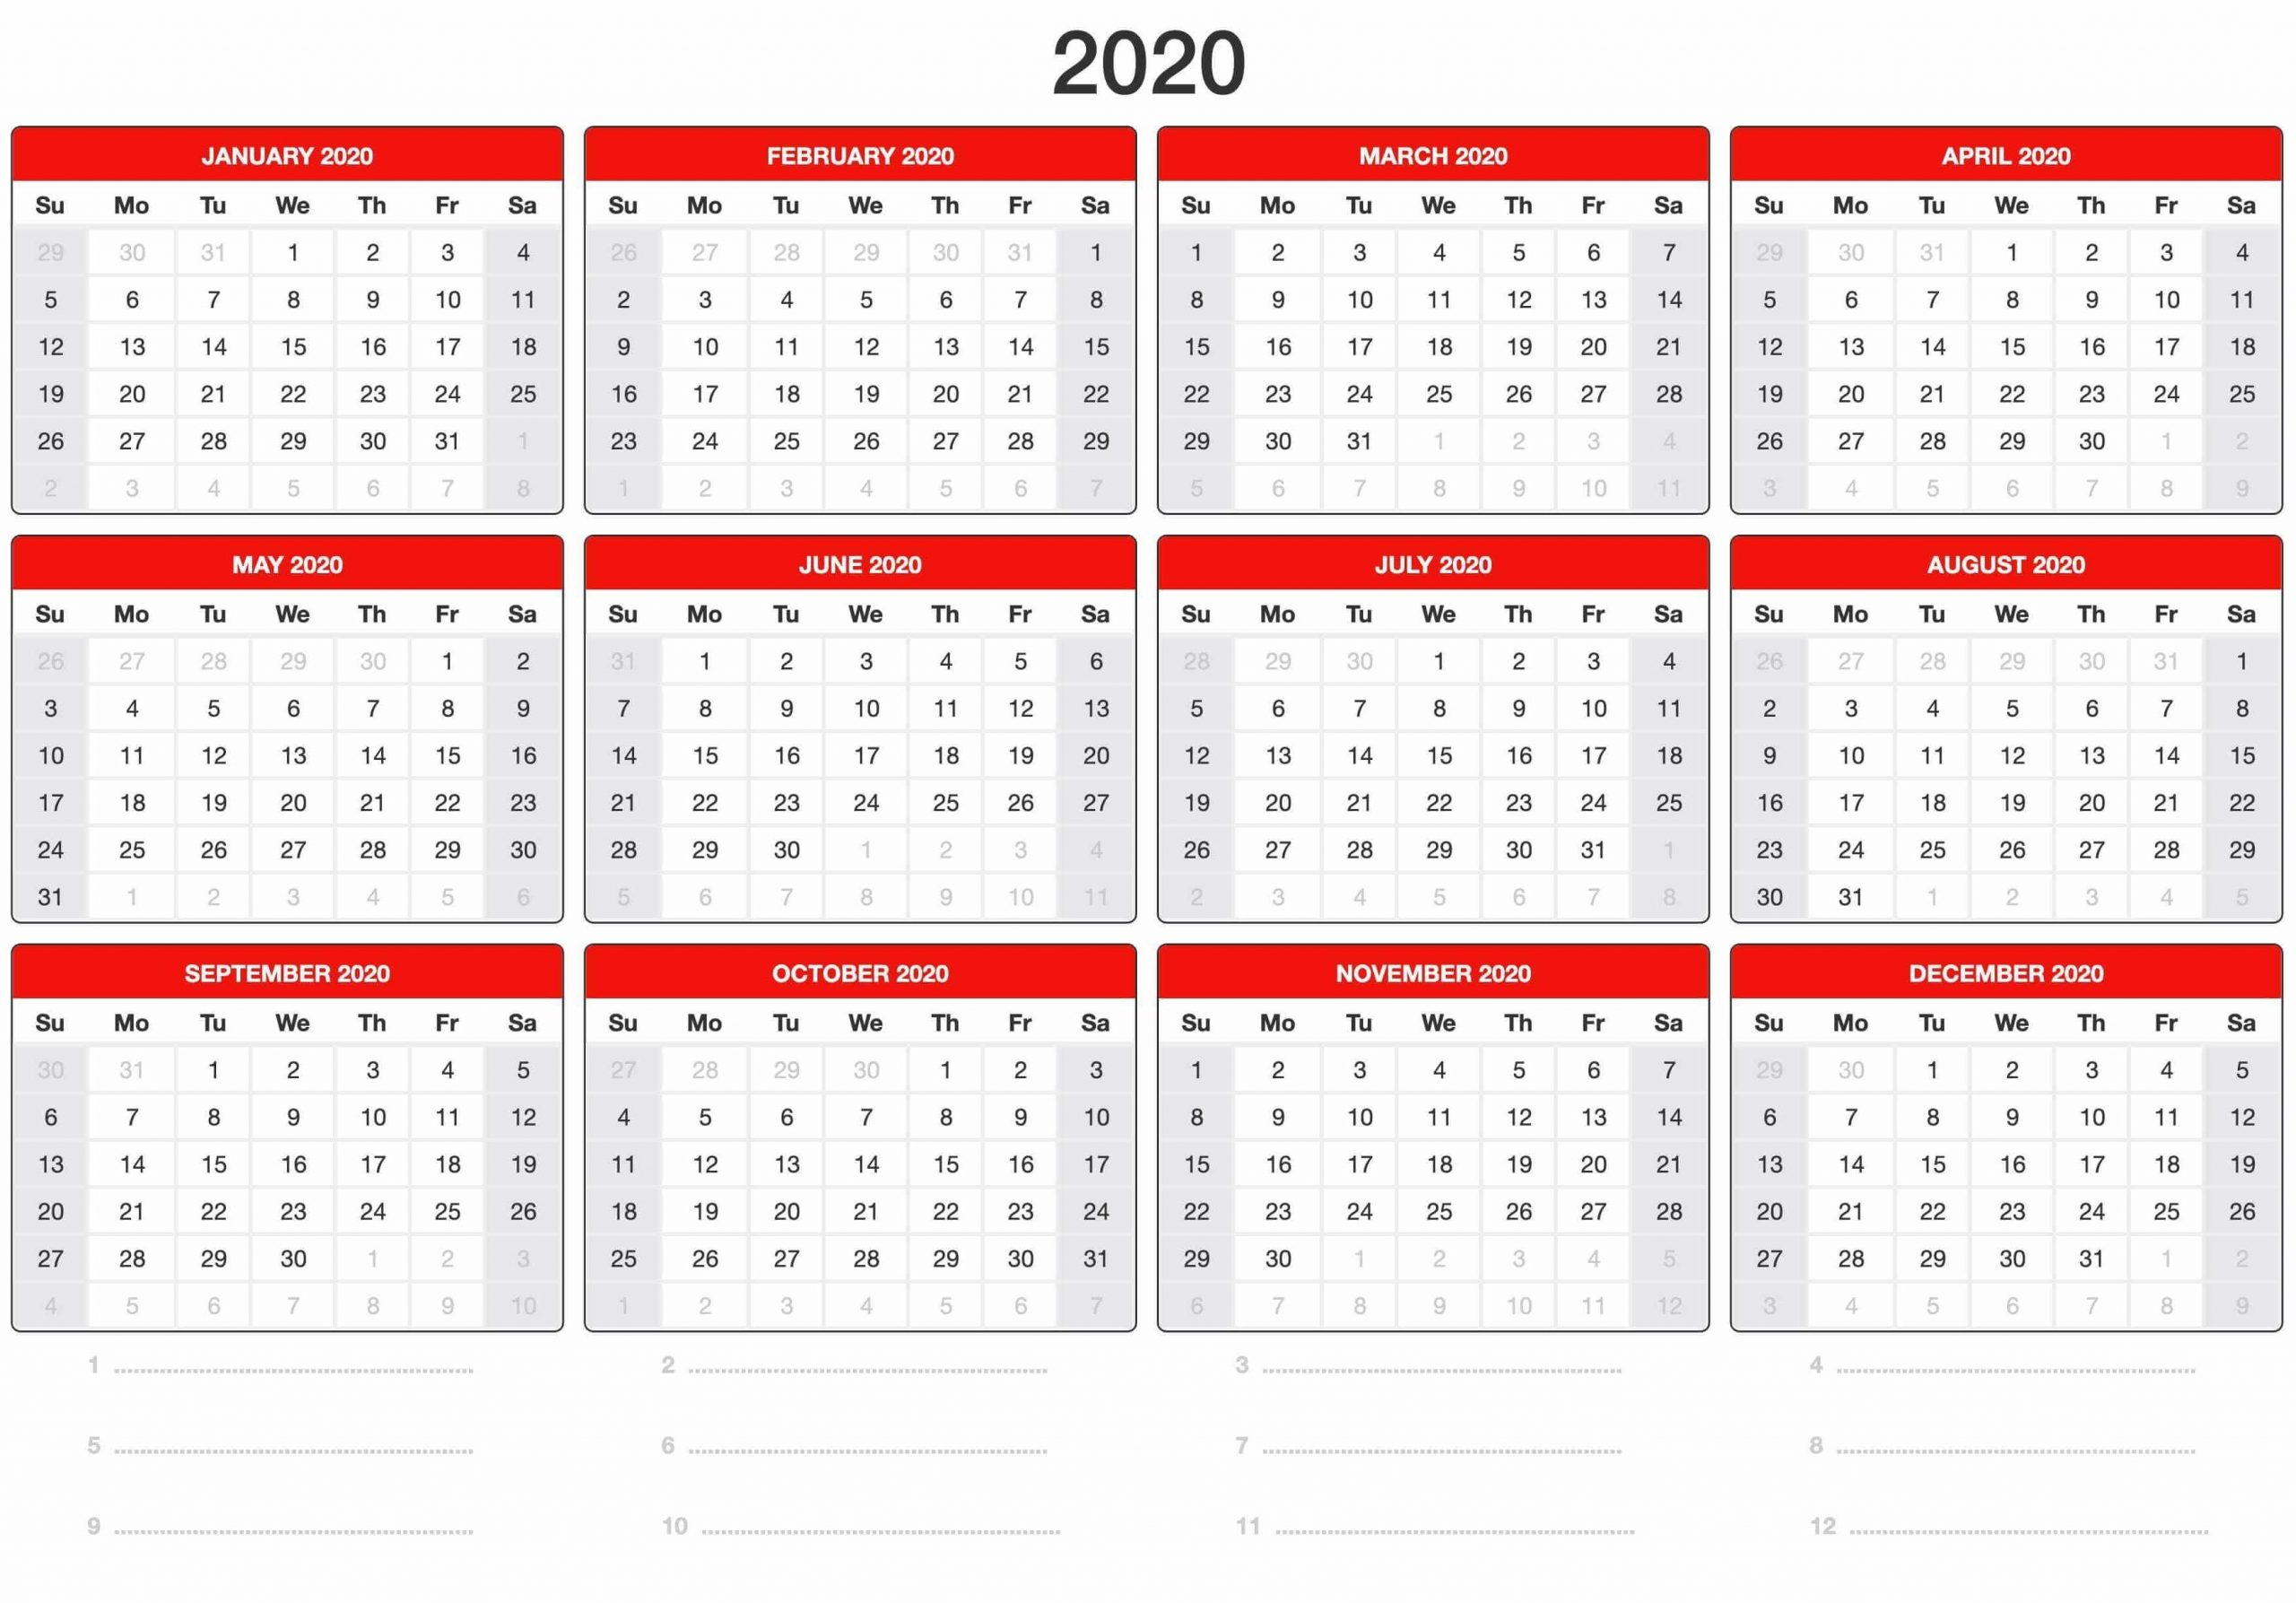 Free Yearly Calendar 2020 Template Online - Set Your Plan pertaining to 2020 Calendar Free Printable With Space To Write